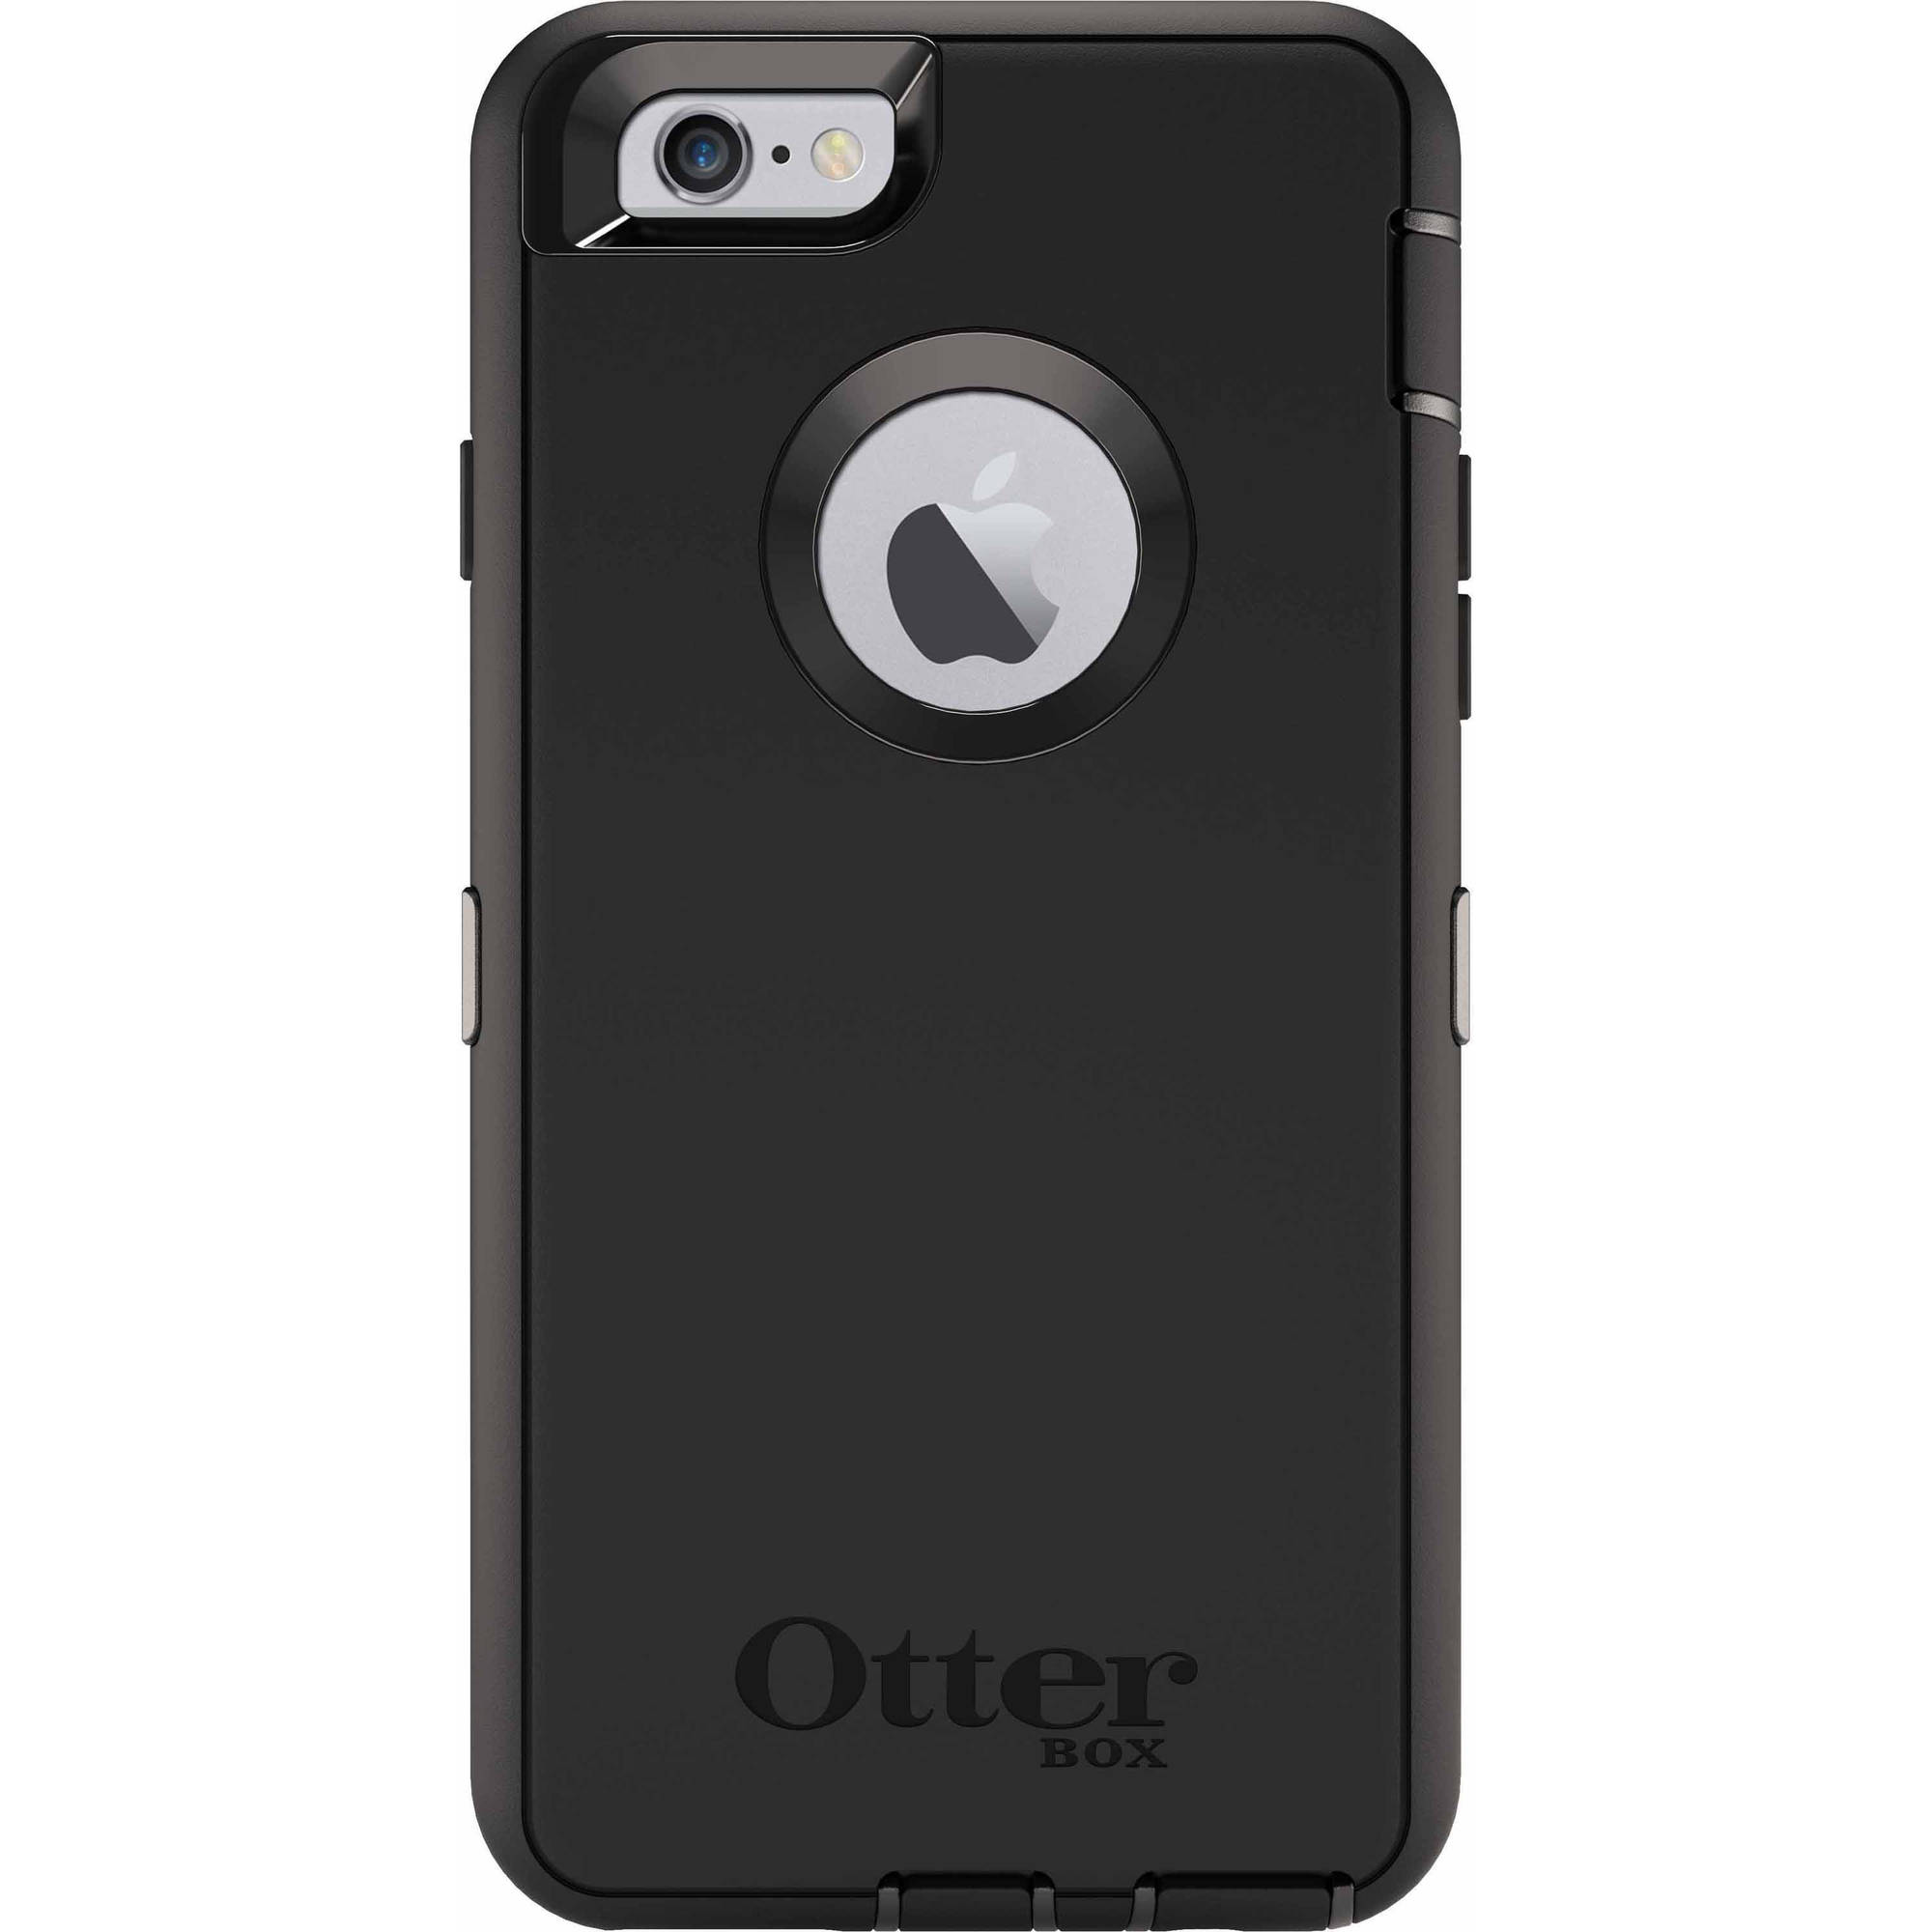 apple iphone 6 black. otterbox commuter series case for apple iphone 7 plus, black - walmart.com iphone 6